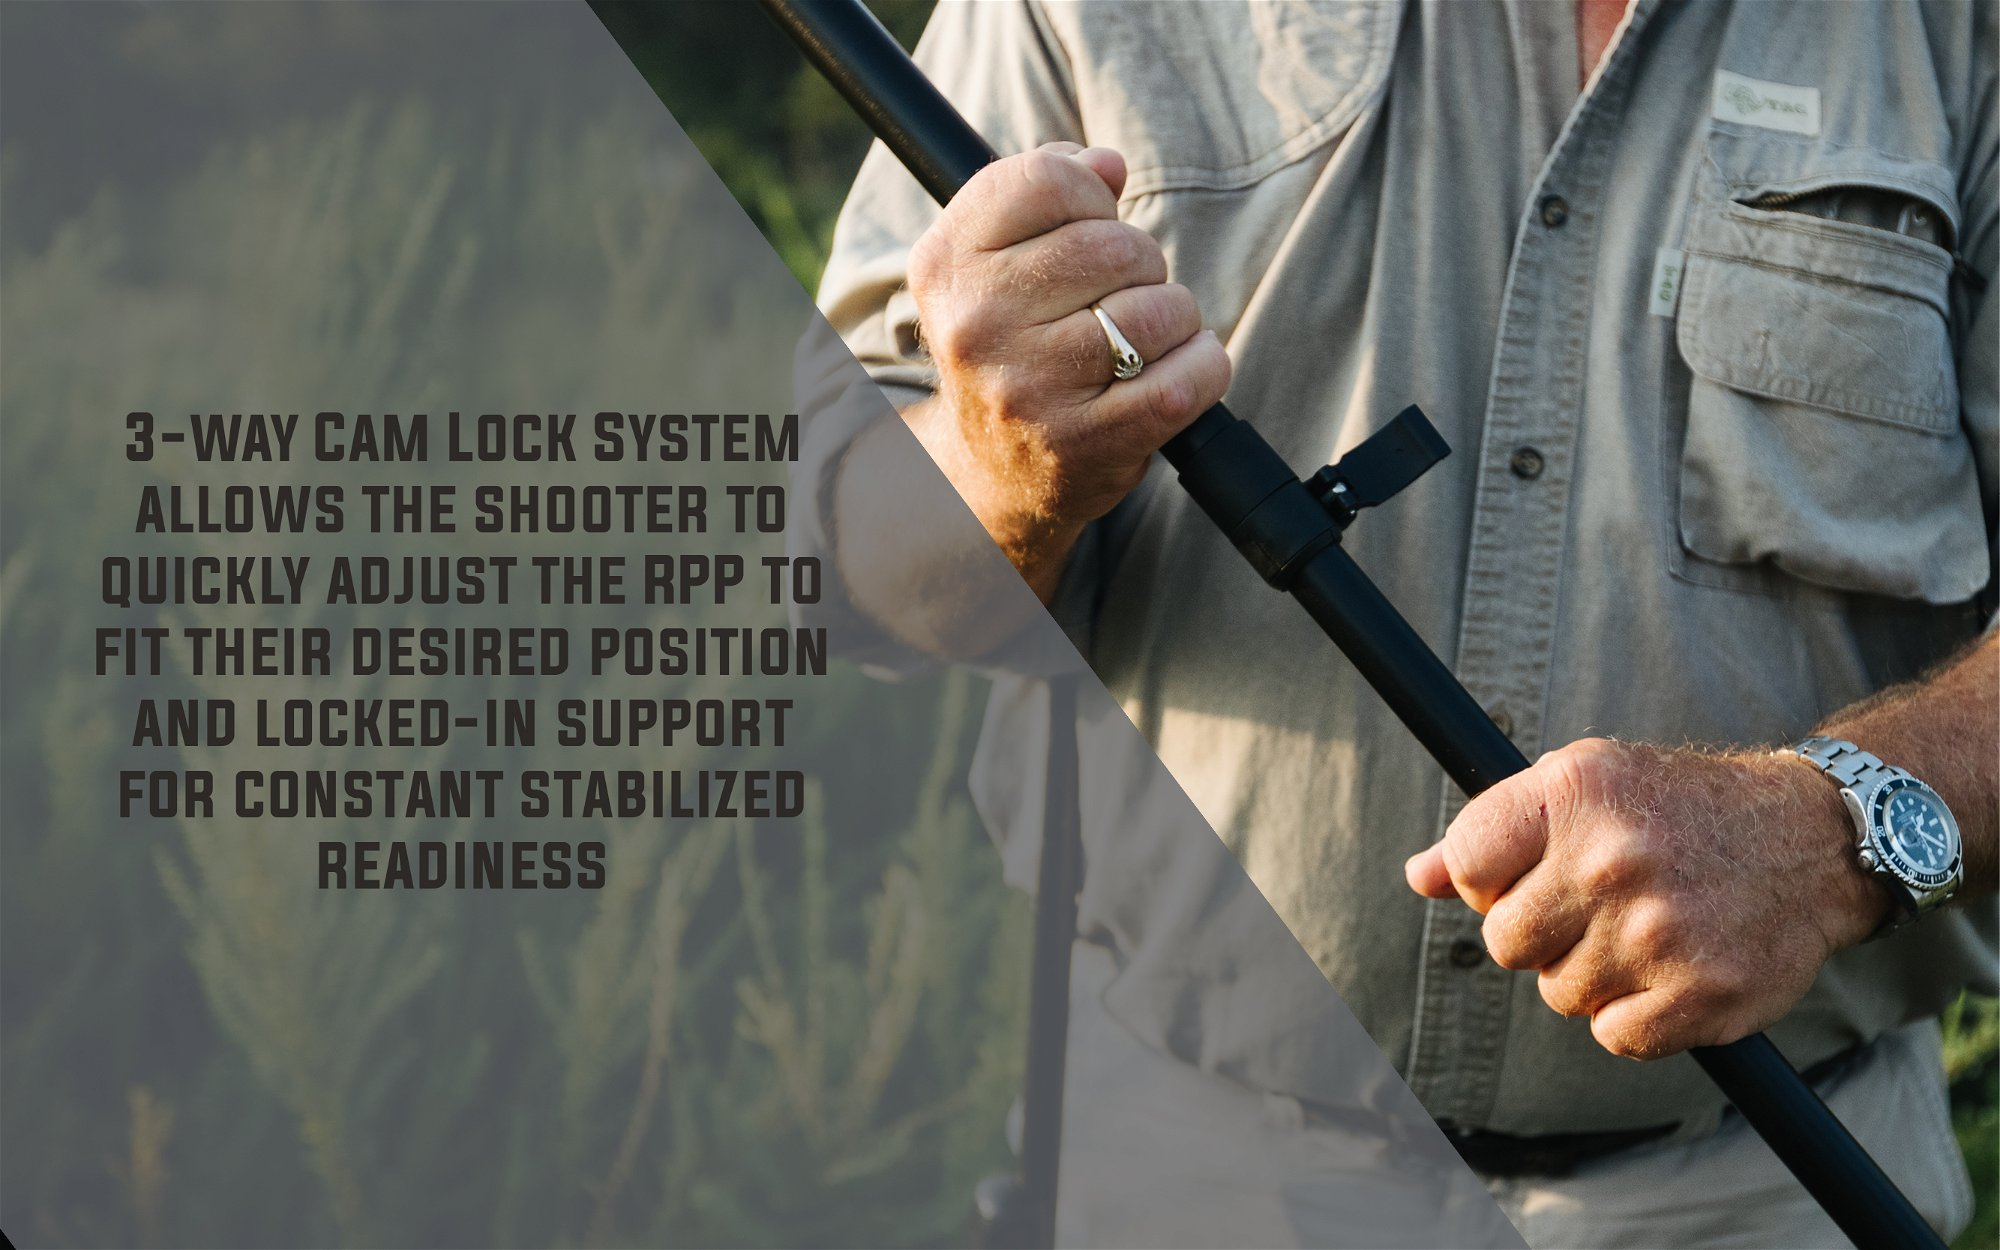 3-Way cam lock system allows the shooter to quickly adjust the RPP to fit their desired position and locked-in support for constant stabilized readiness.